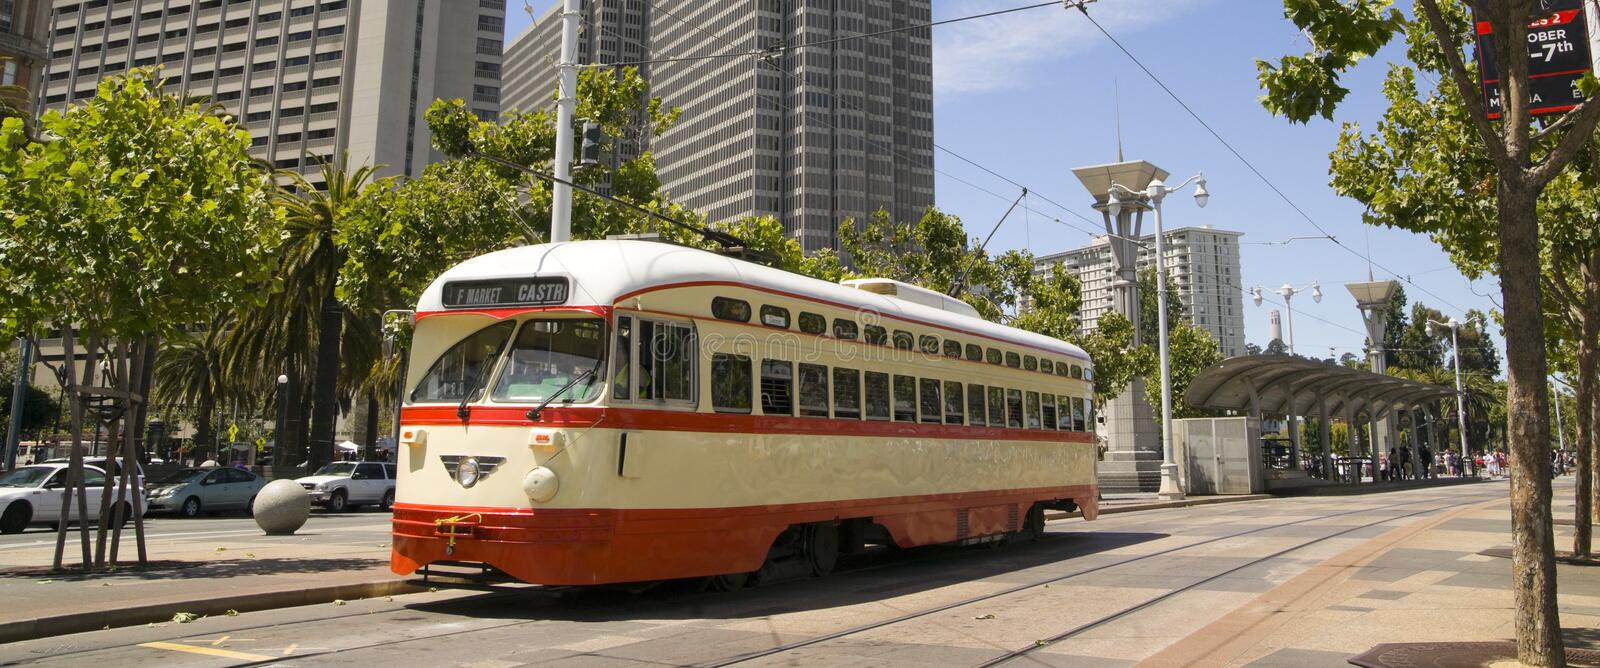 Panoramic Photo Trolley in San Francisco Street royalty free stock image